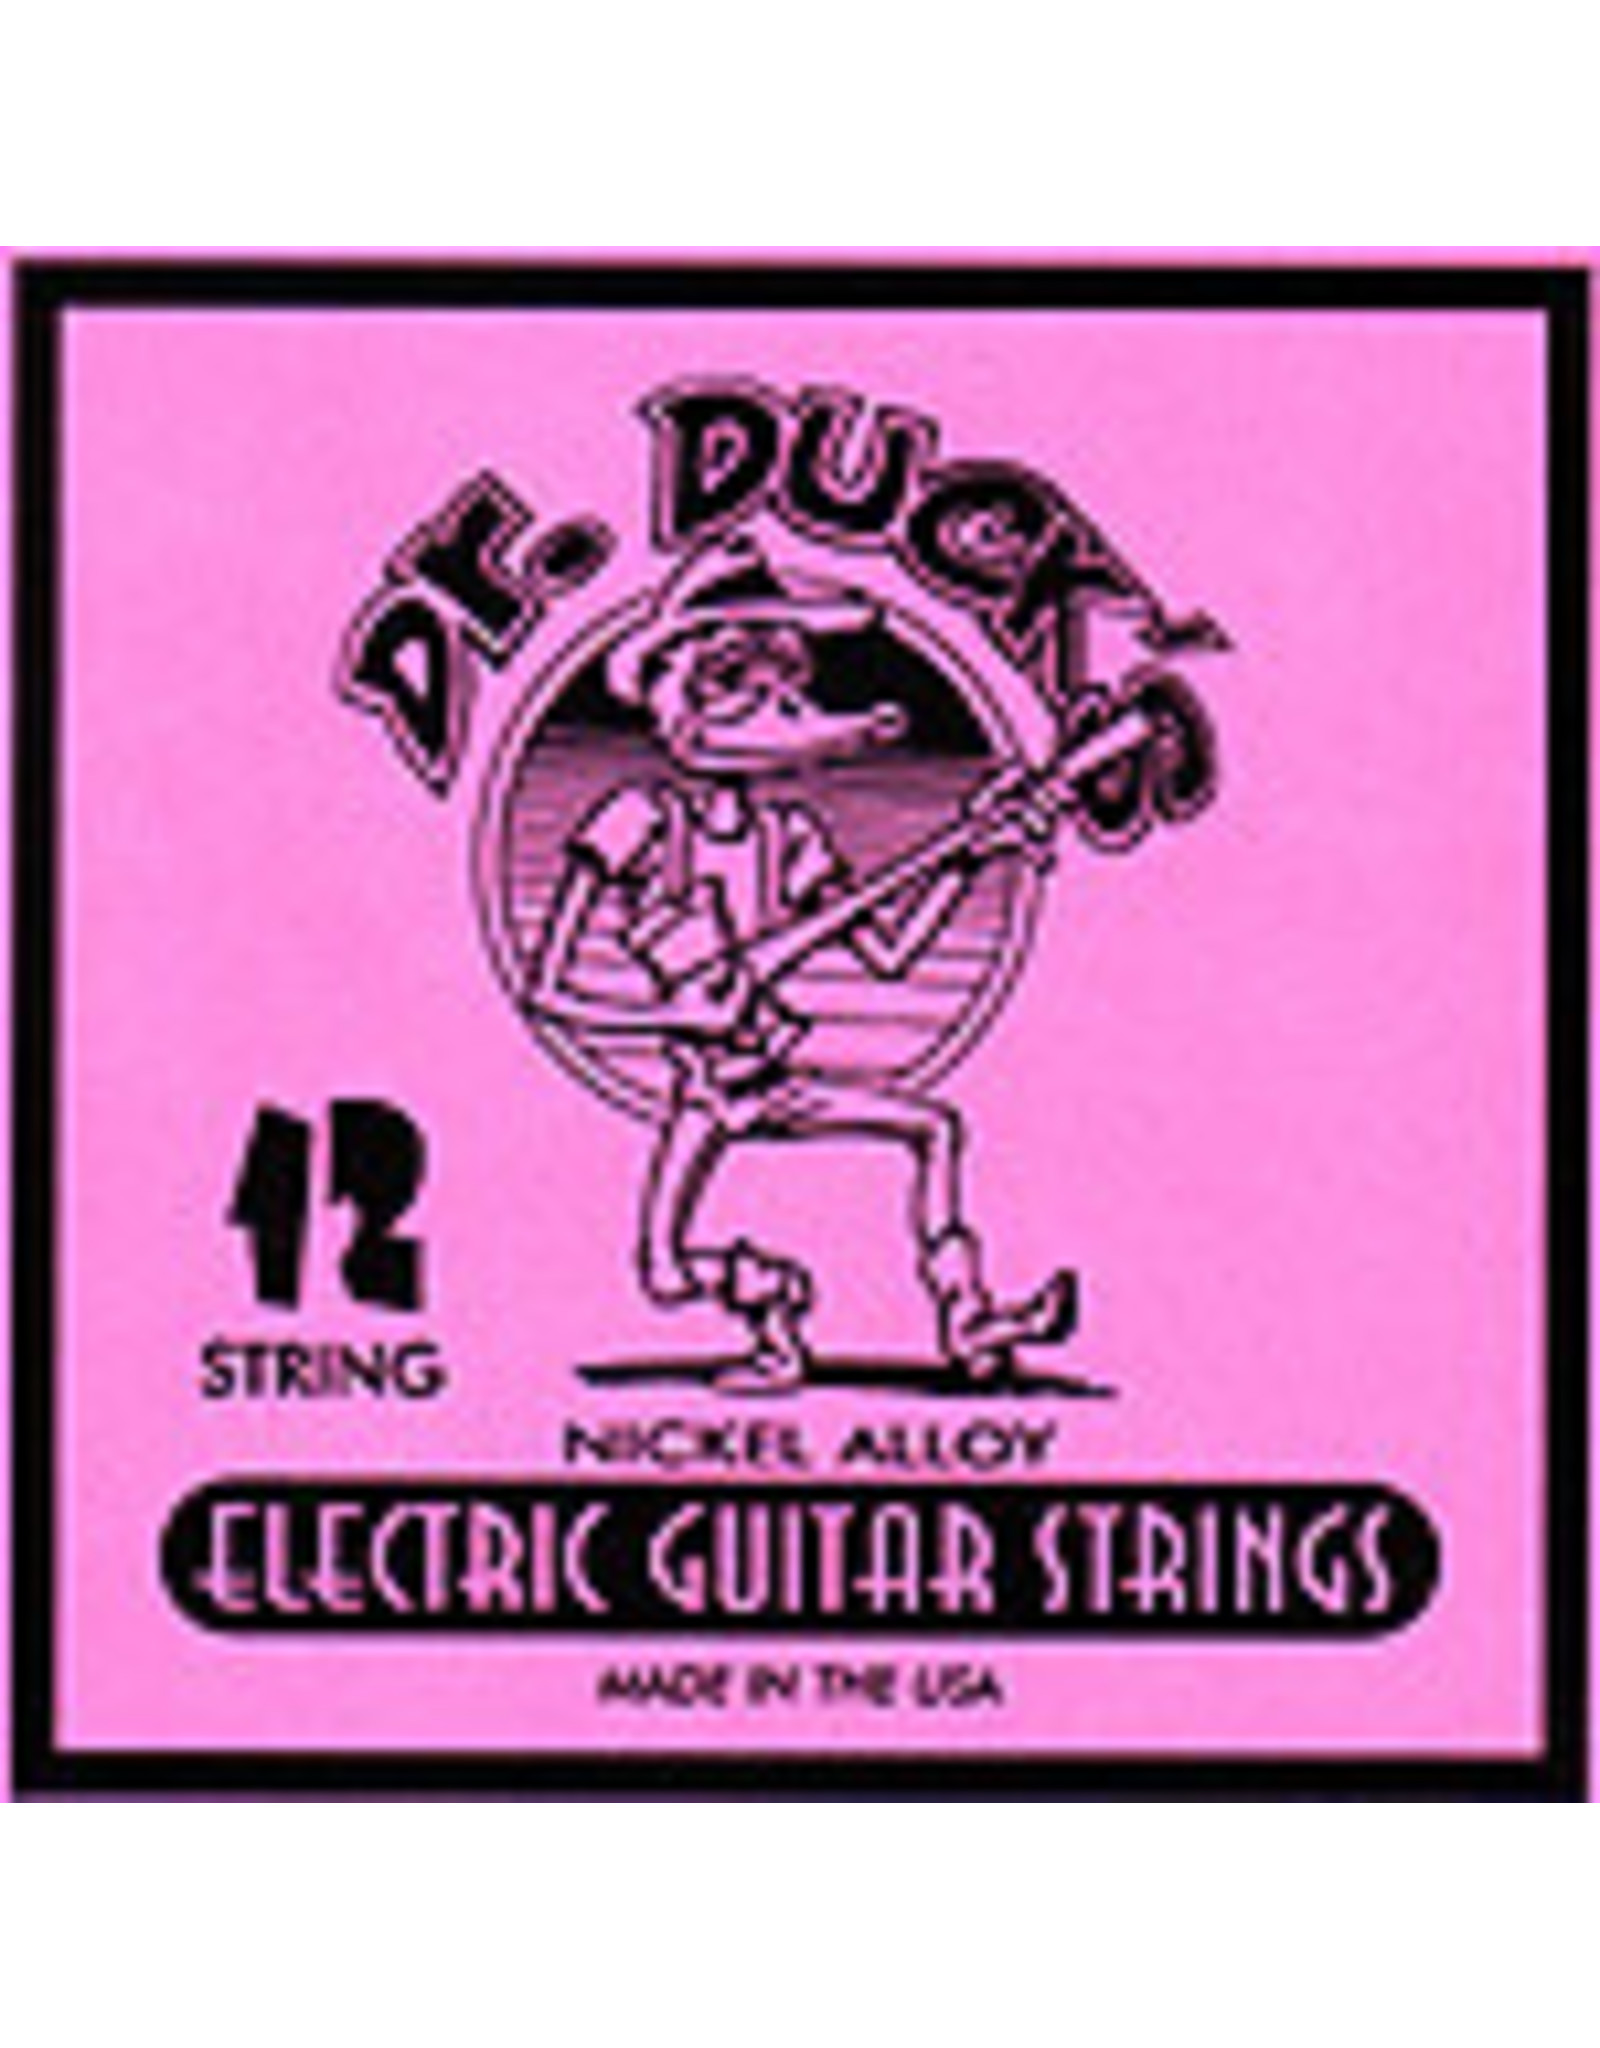 Dr. Duck's Dr. Duck's 12 String Electric Guitar Strings